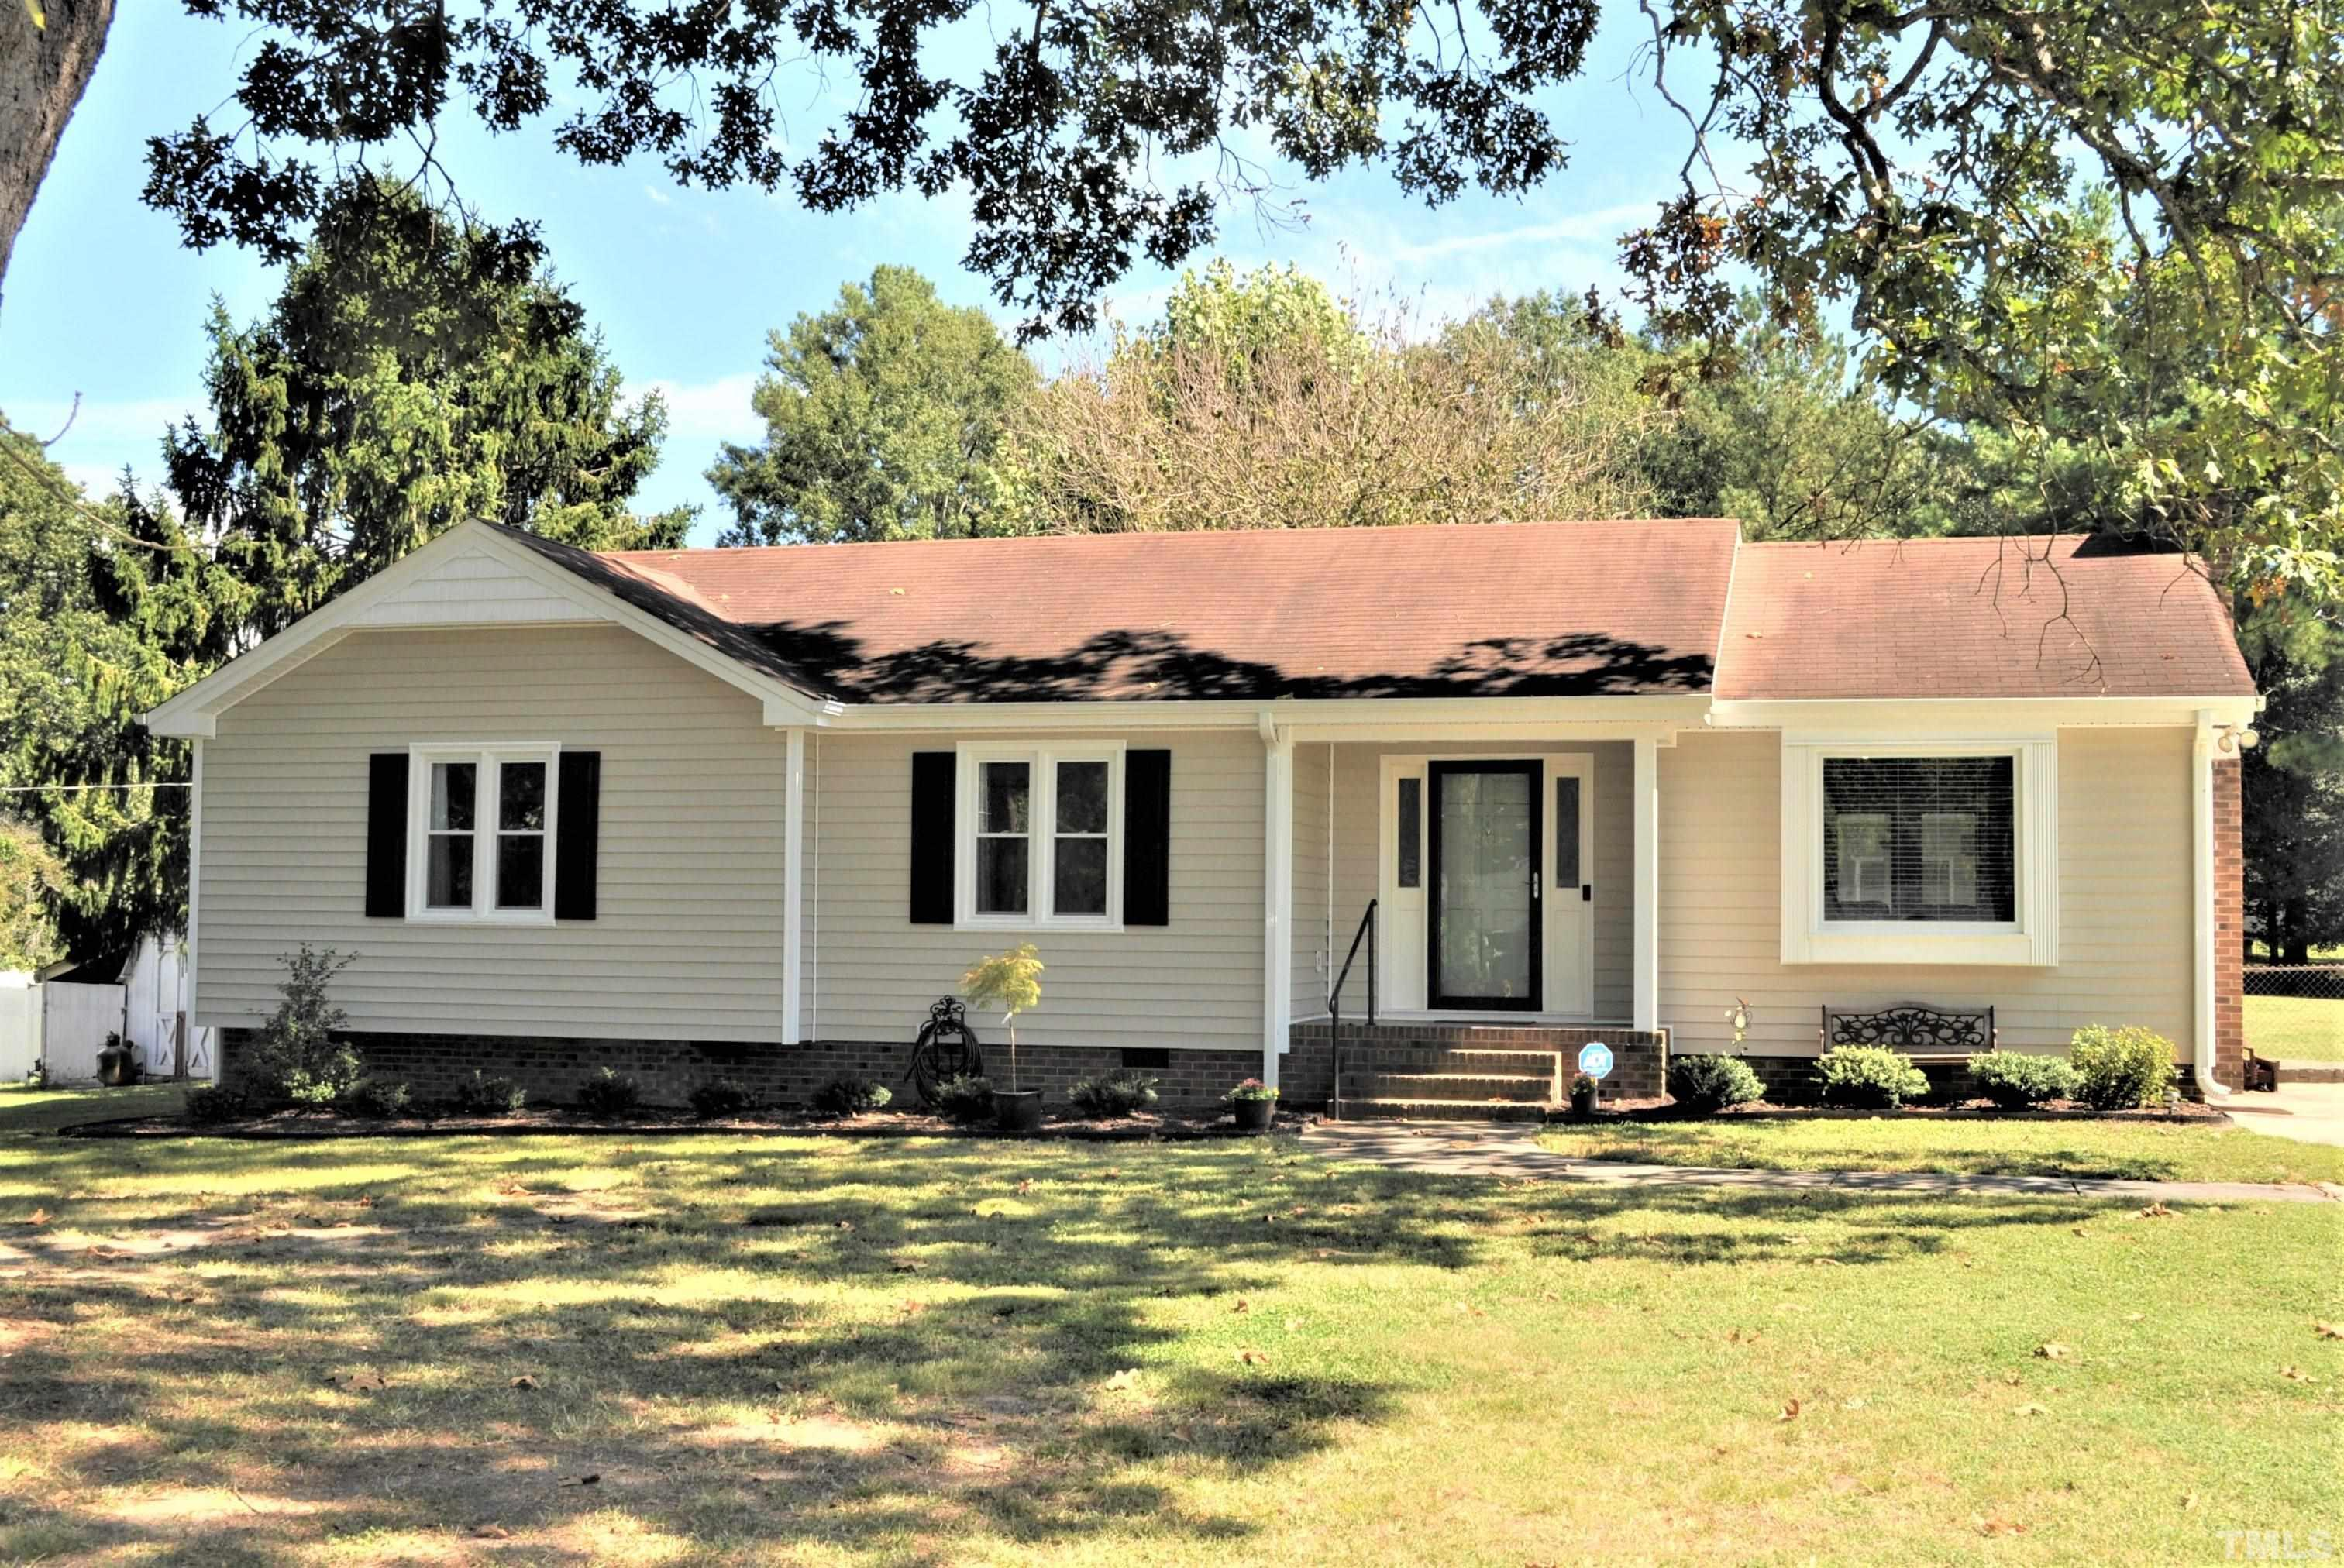 Neat as a pin and move in ready!!! Beautiful three bedroom, two bath home features many upgrades including granite counter tops, lots of fresh paint and new flooring, plus a screened porch, fenced yard and two storage buildings (16 x 24 and 11 X 15). Situated on a nice .72 acre lot, just outside the city limits with city water connected & no HOA fees. Refrigerator, washer & dryer included... conveniently located just minutes from I-40 and 540. Don't miss this one, make an appointment today!